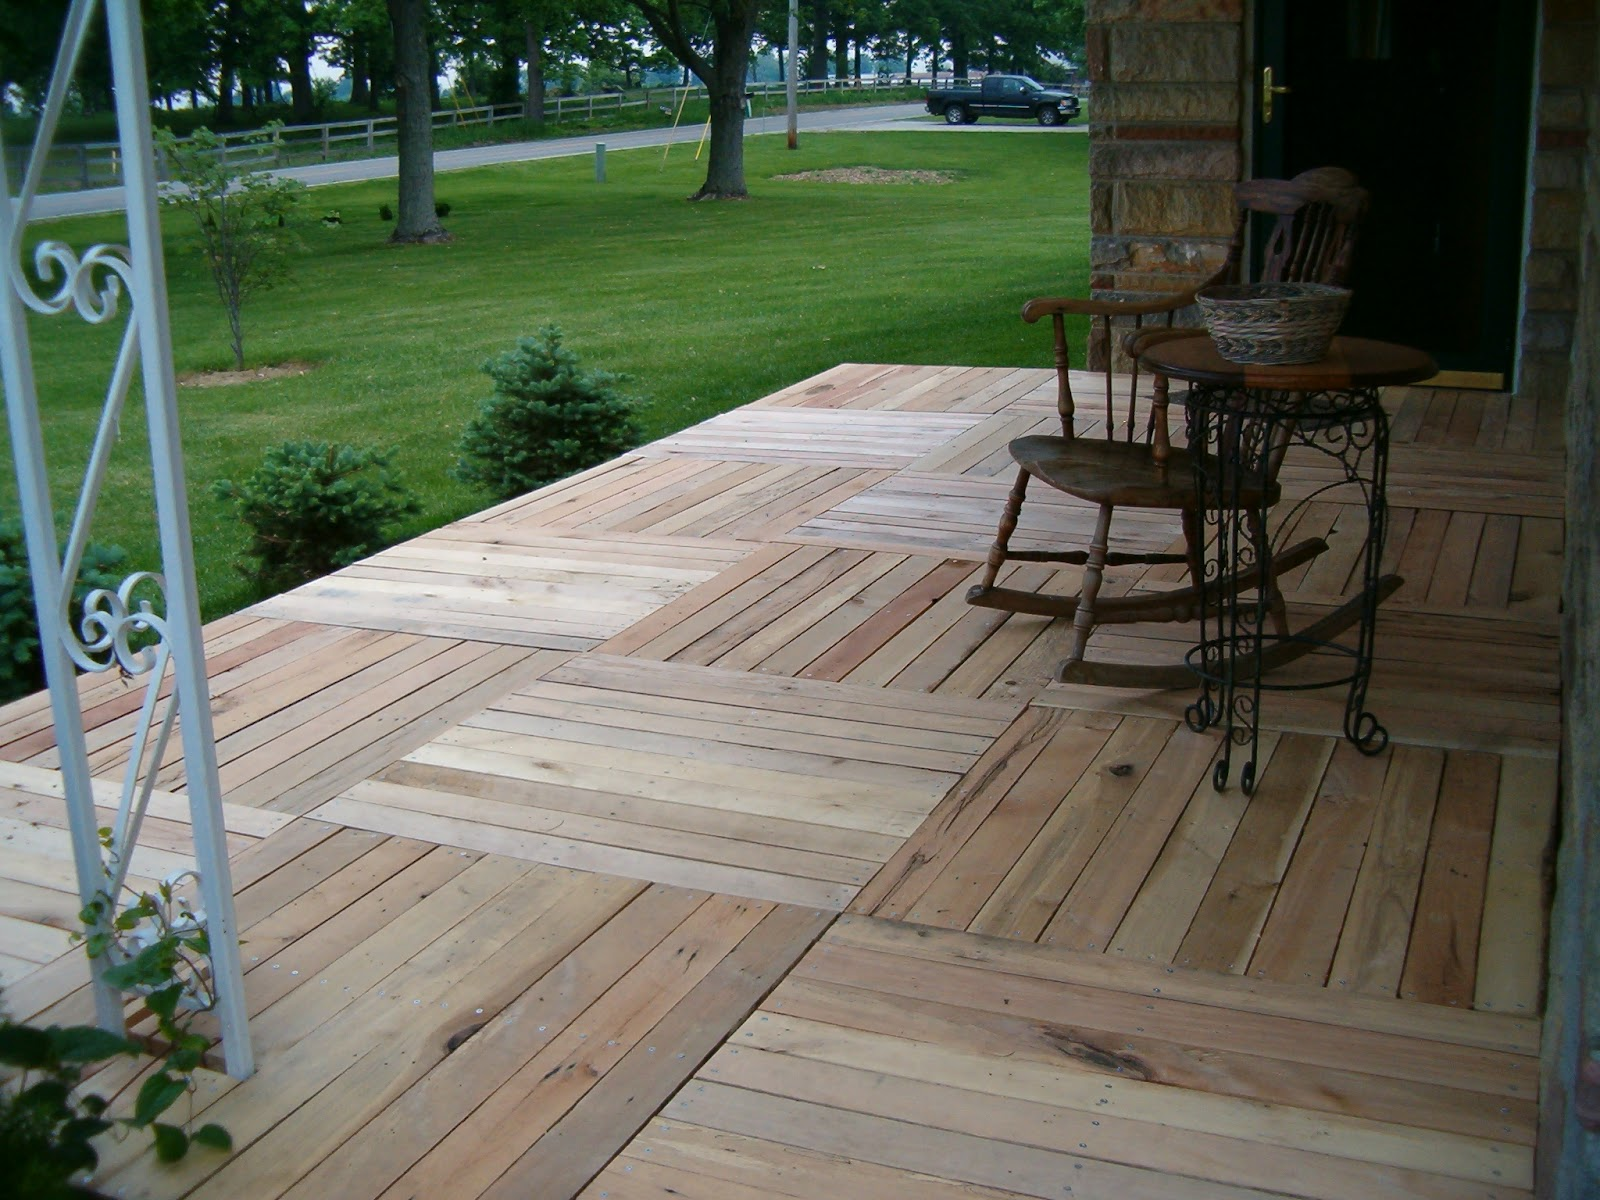 Decking Using Pallets Redo Redux Revisiting Past Projects Pallet Wood Front Porch